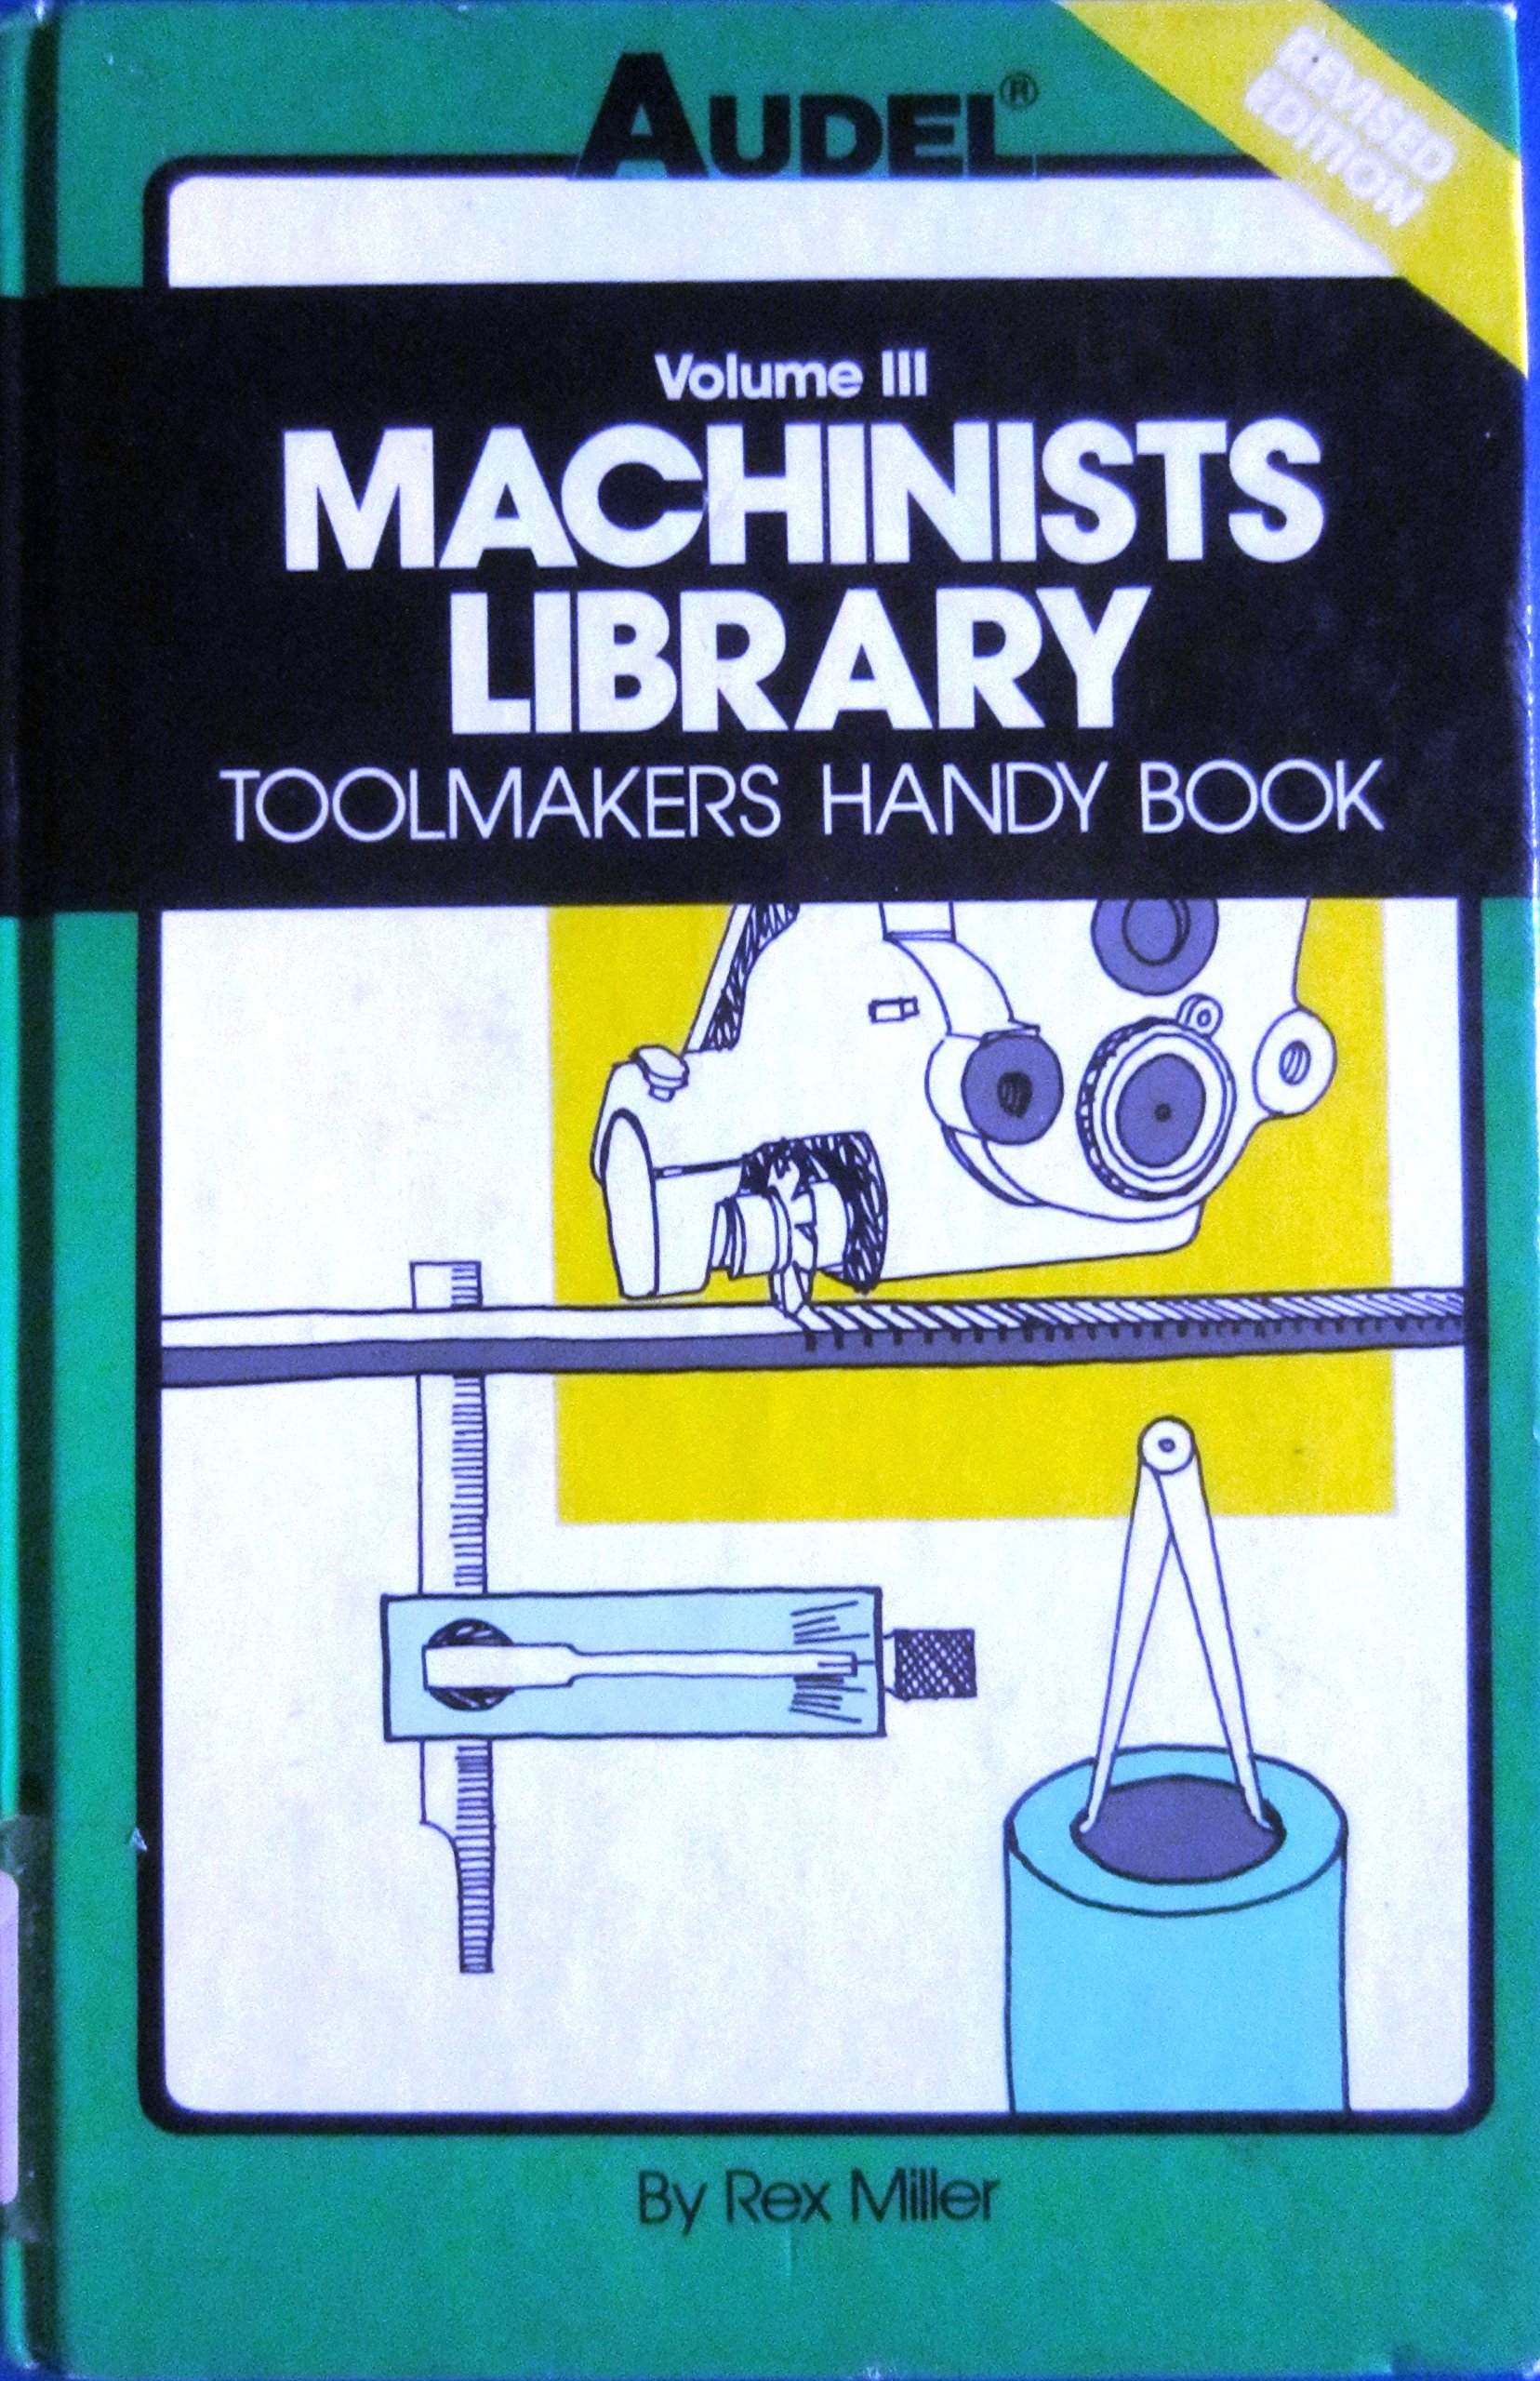 Machinists Library: Toolmakers Handy Book